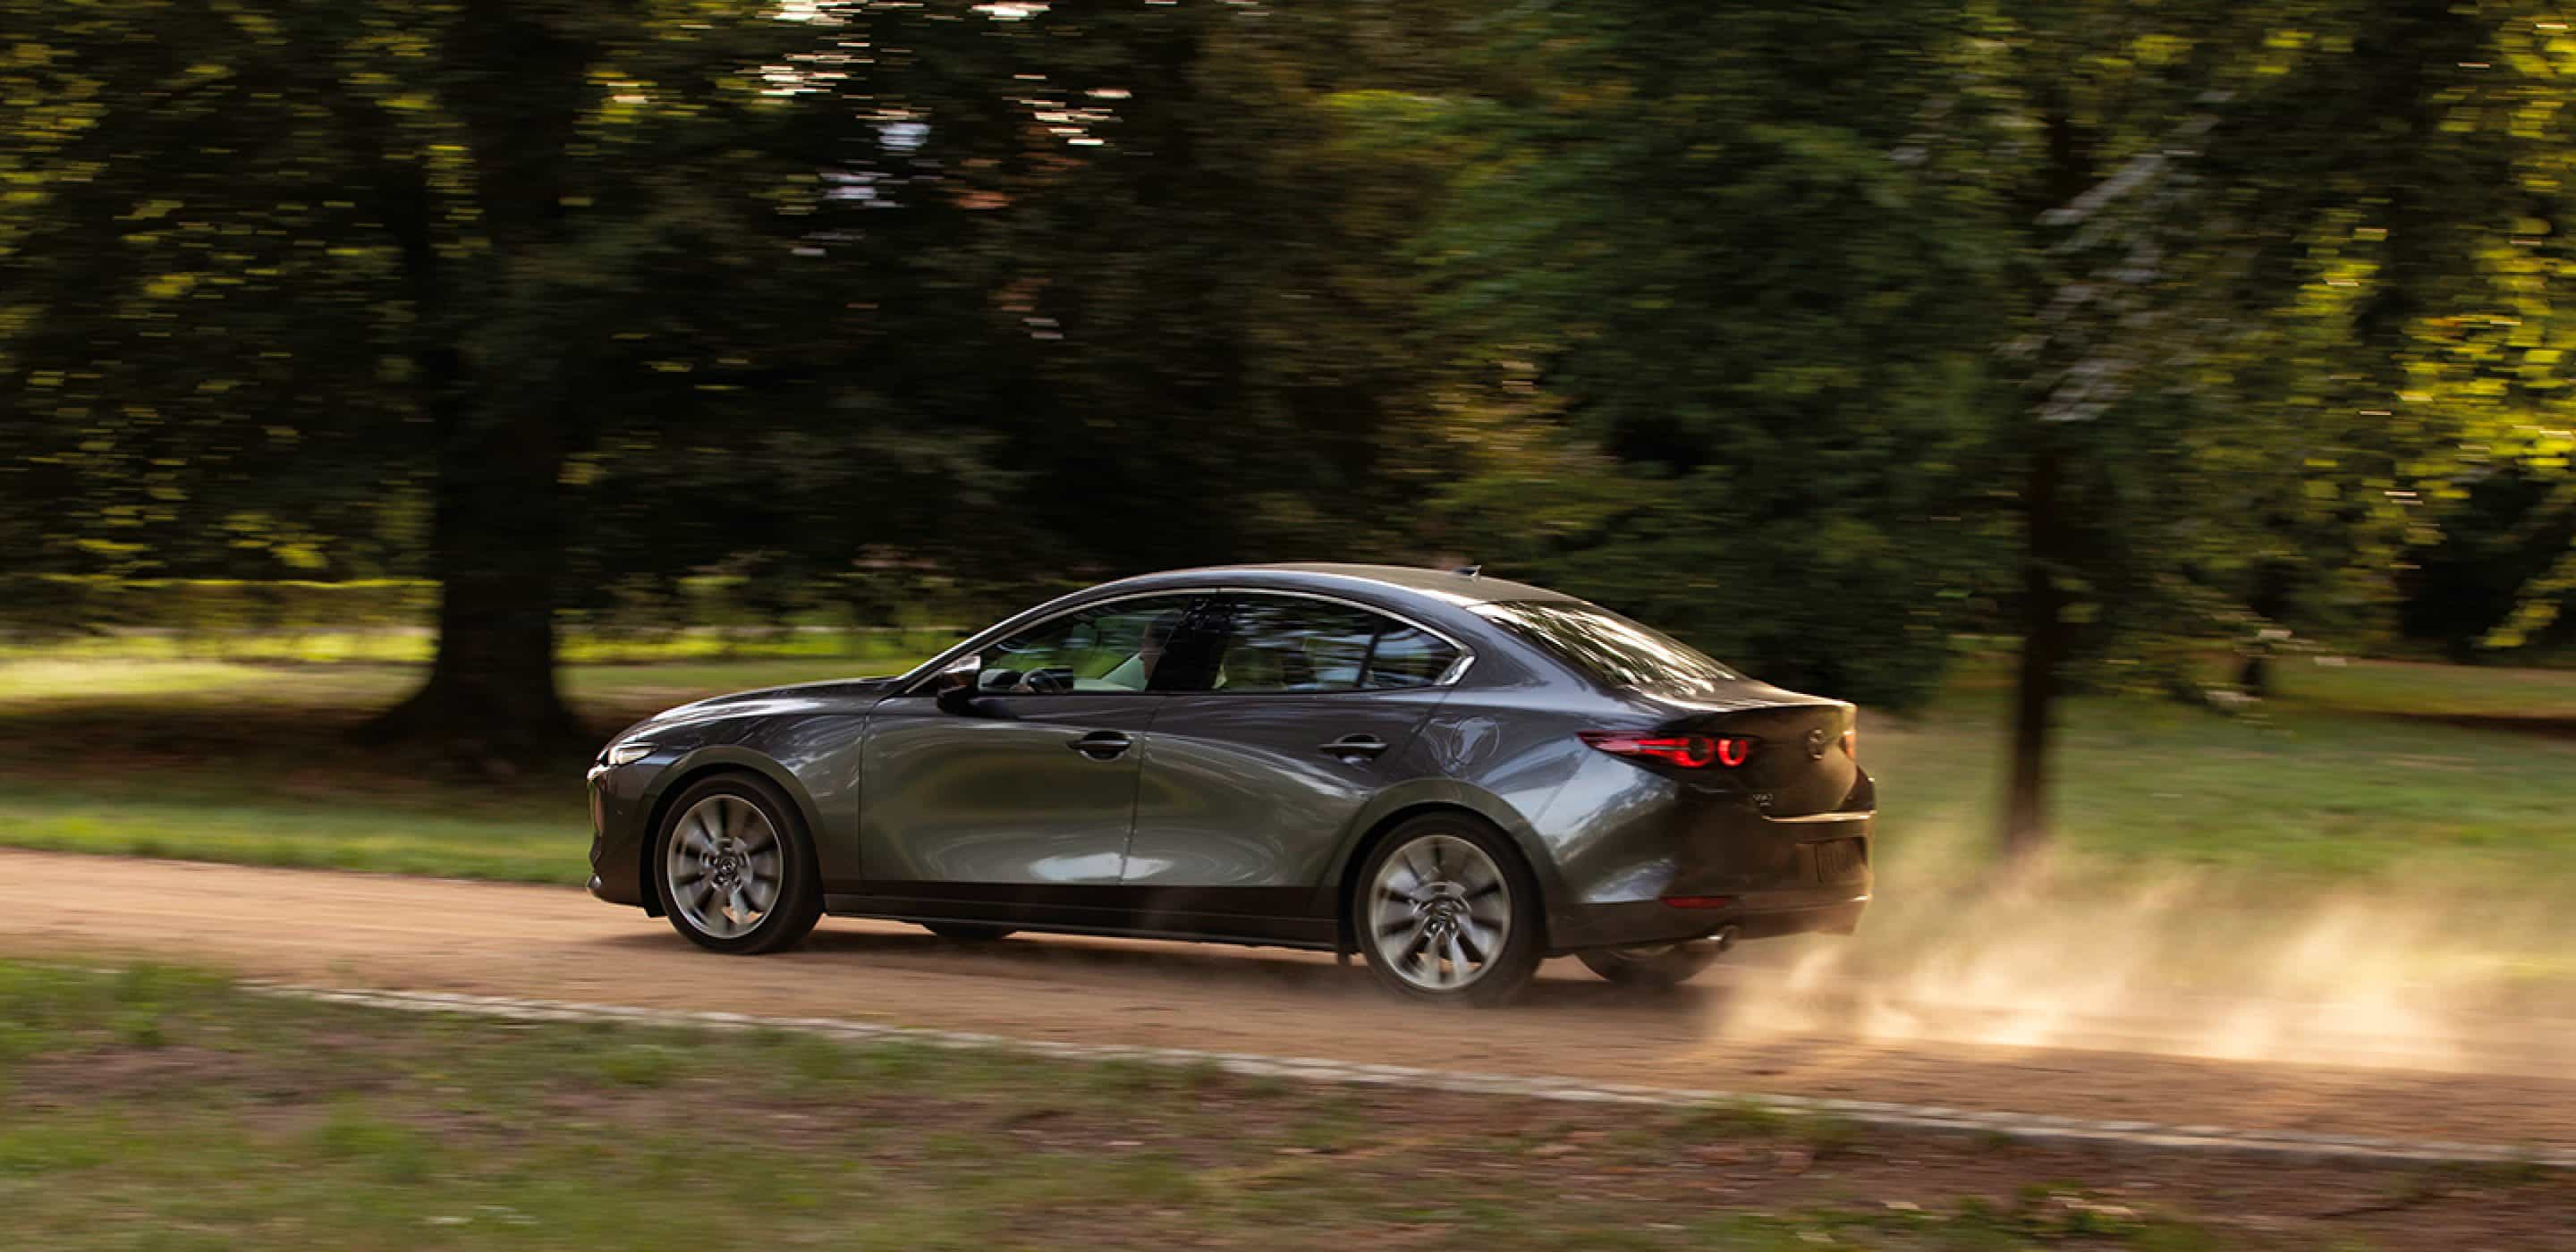 2020 Mazda3 Sedan, 2020 WORLD CAR DESIGN OF THE YEAR